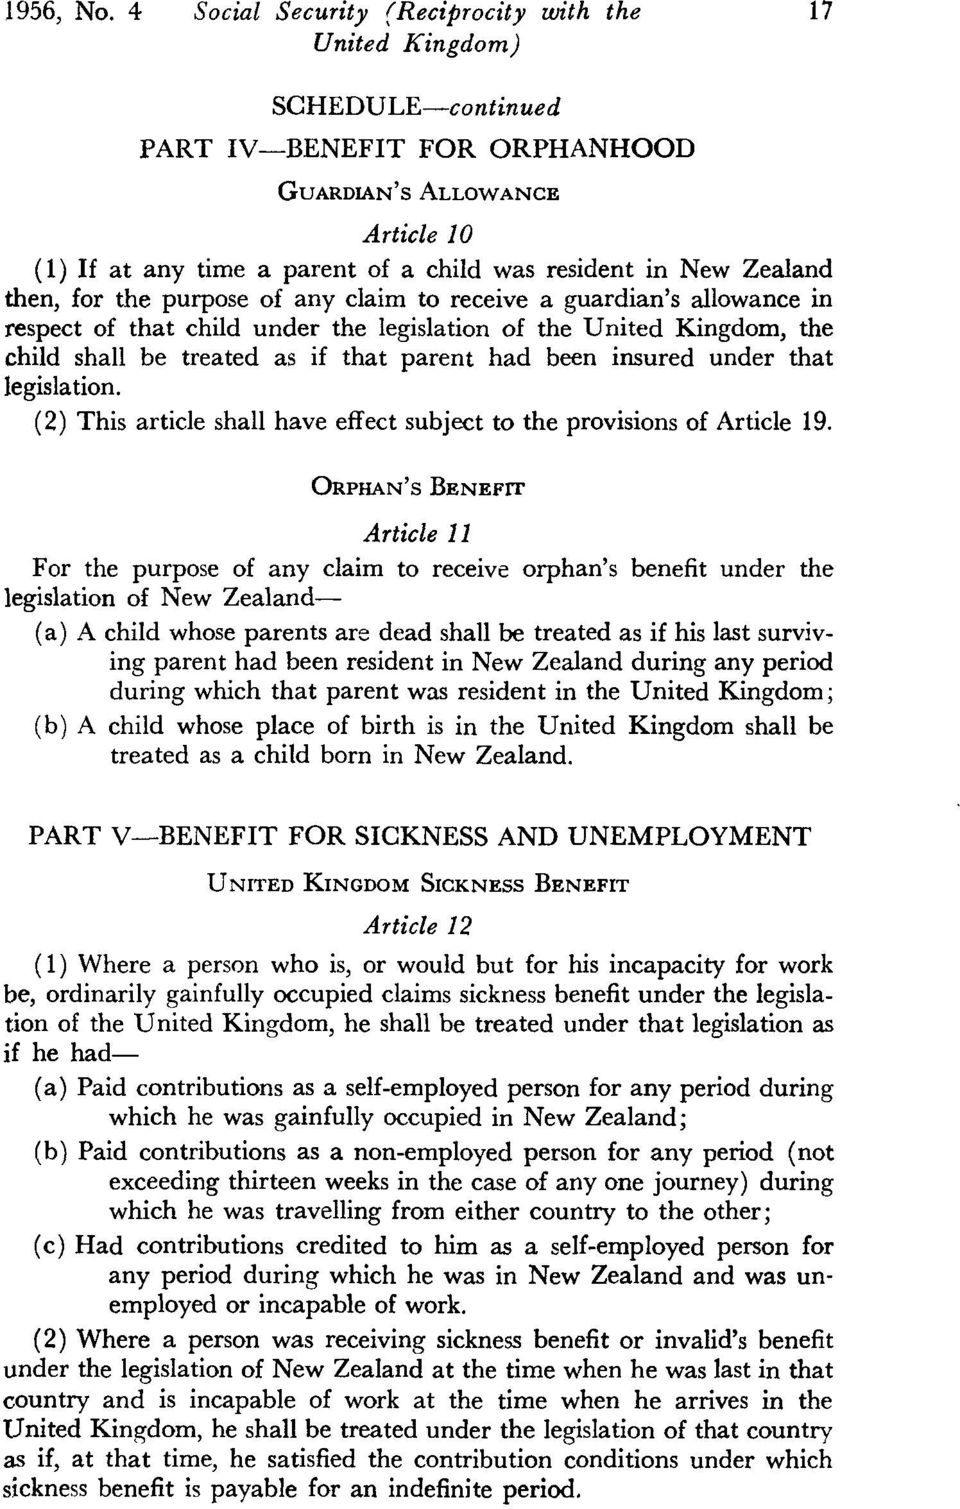 any claim to receive a guardian's allowance in respect of that child under the legislation of the United Kingdom, the child shall be treated as if that parent had been insured under that legislation.